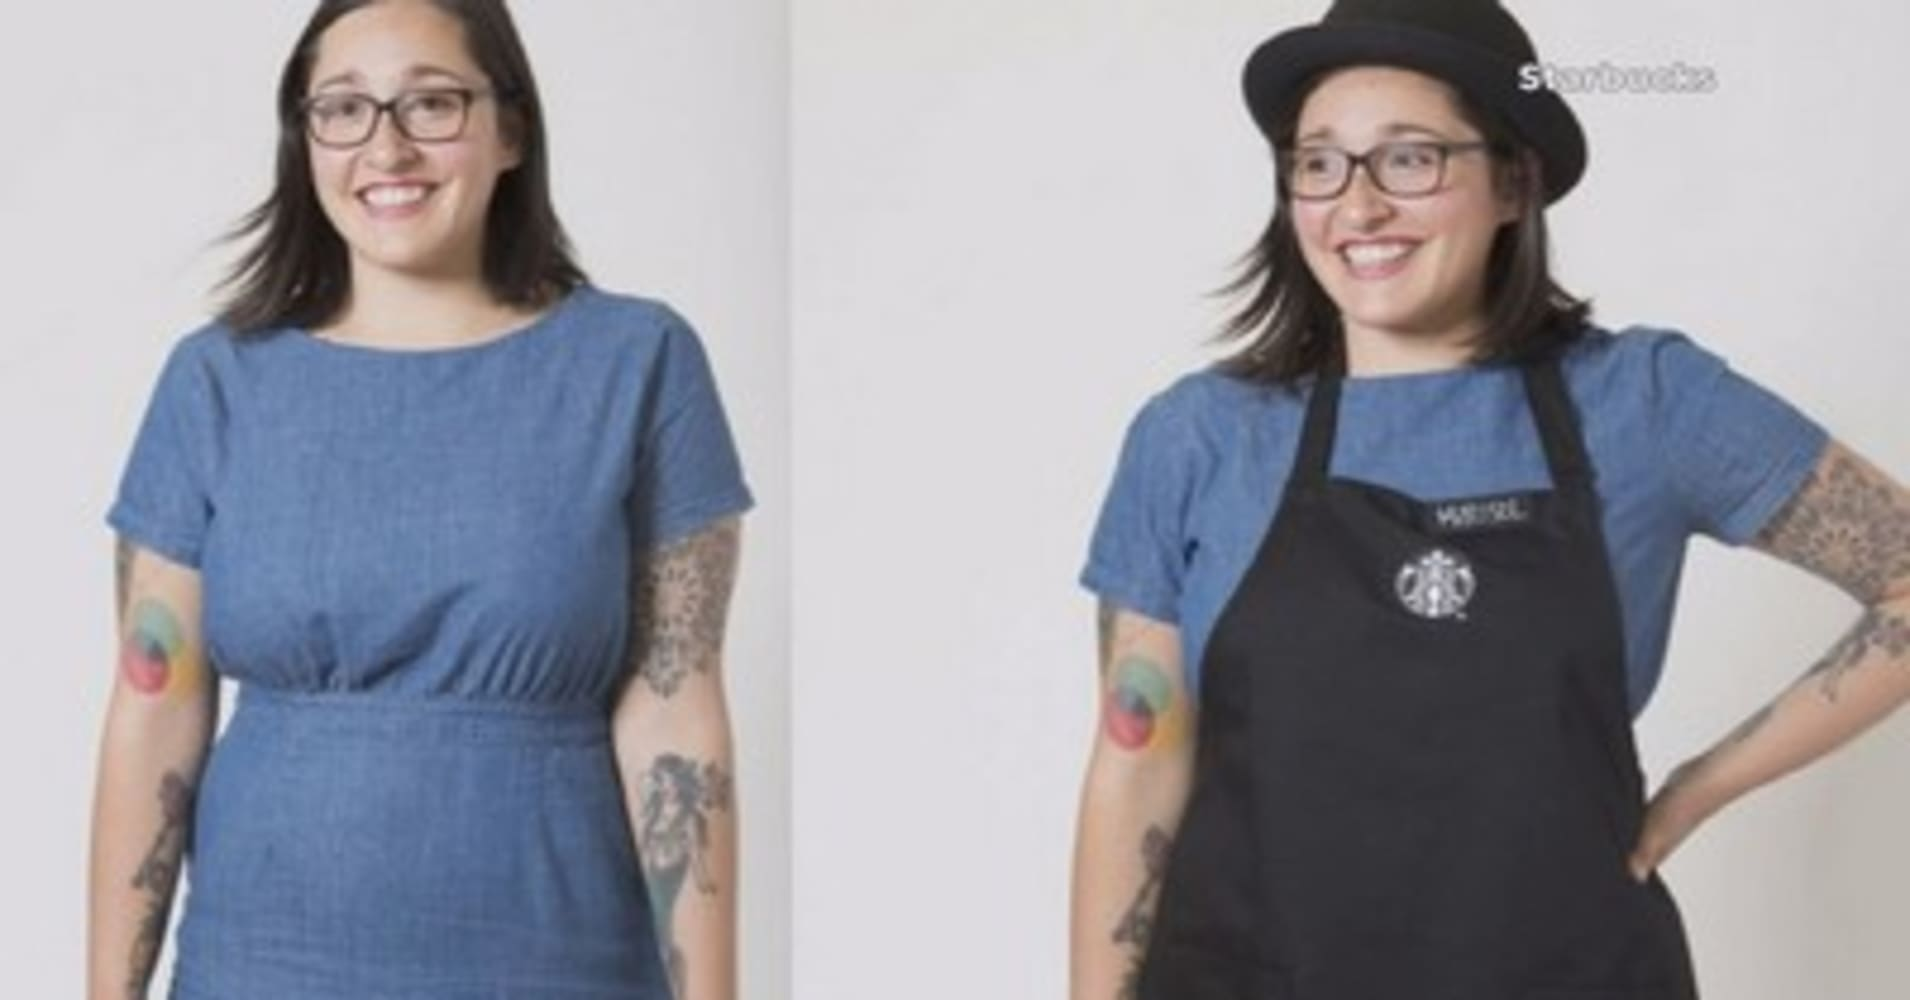 Starbucks baristas are showing their style with a new dress code